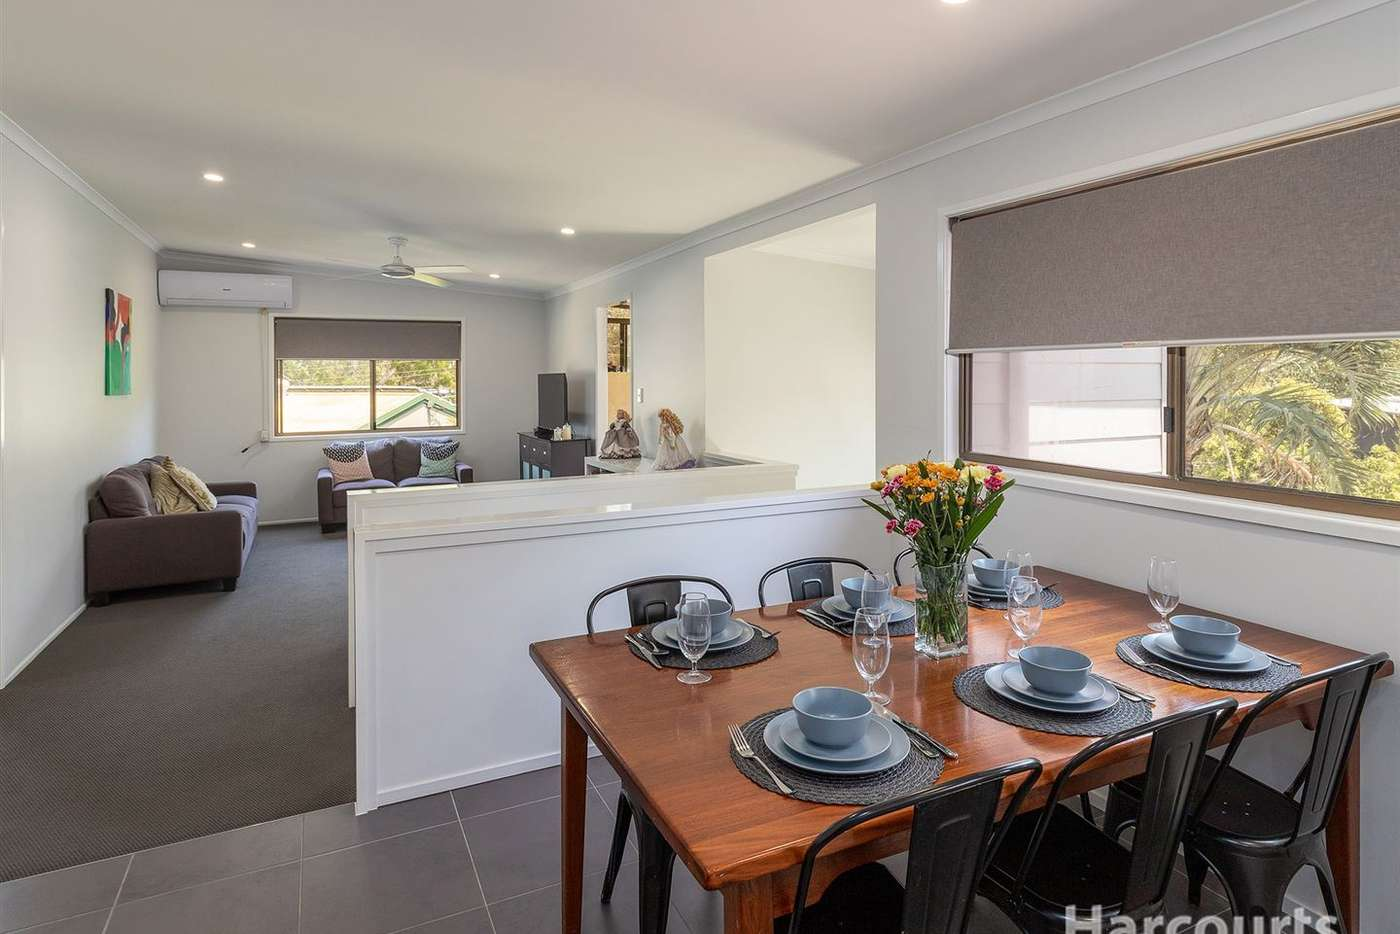 Sixth view of Homely house listing, 4 Elgata St, Petrie QLD 4502